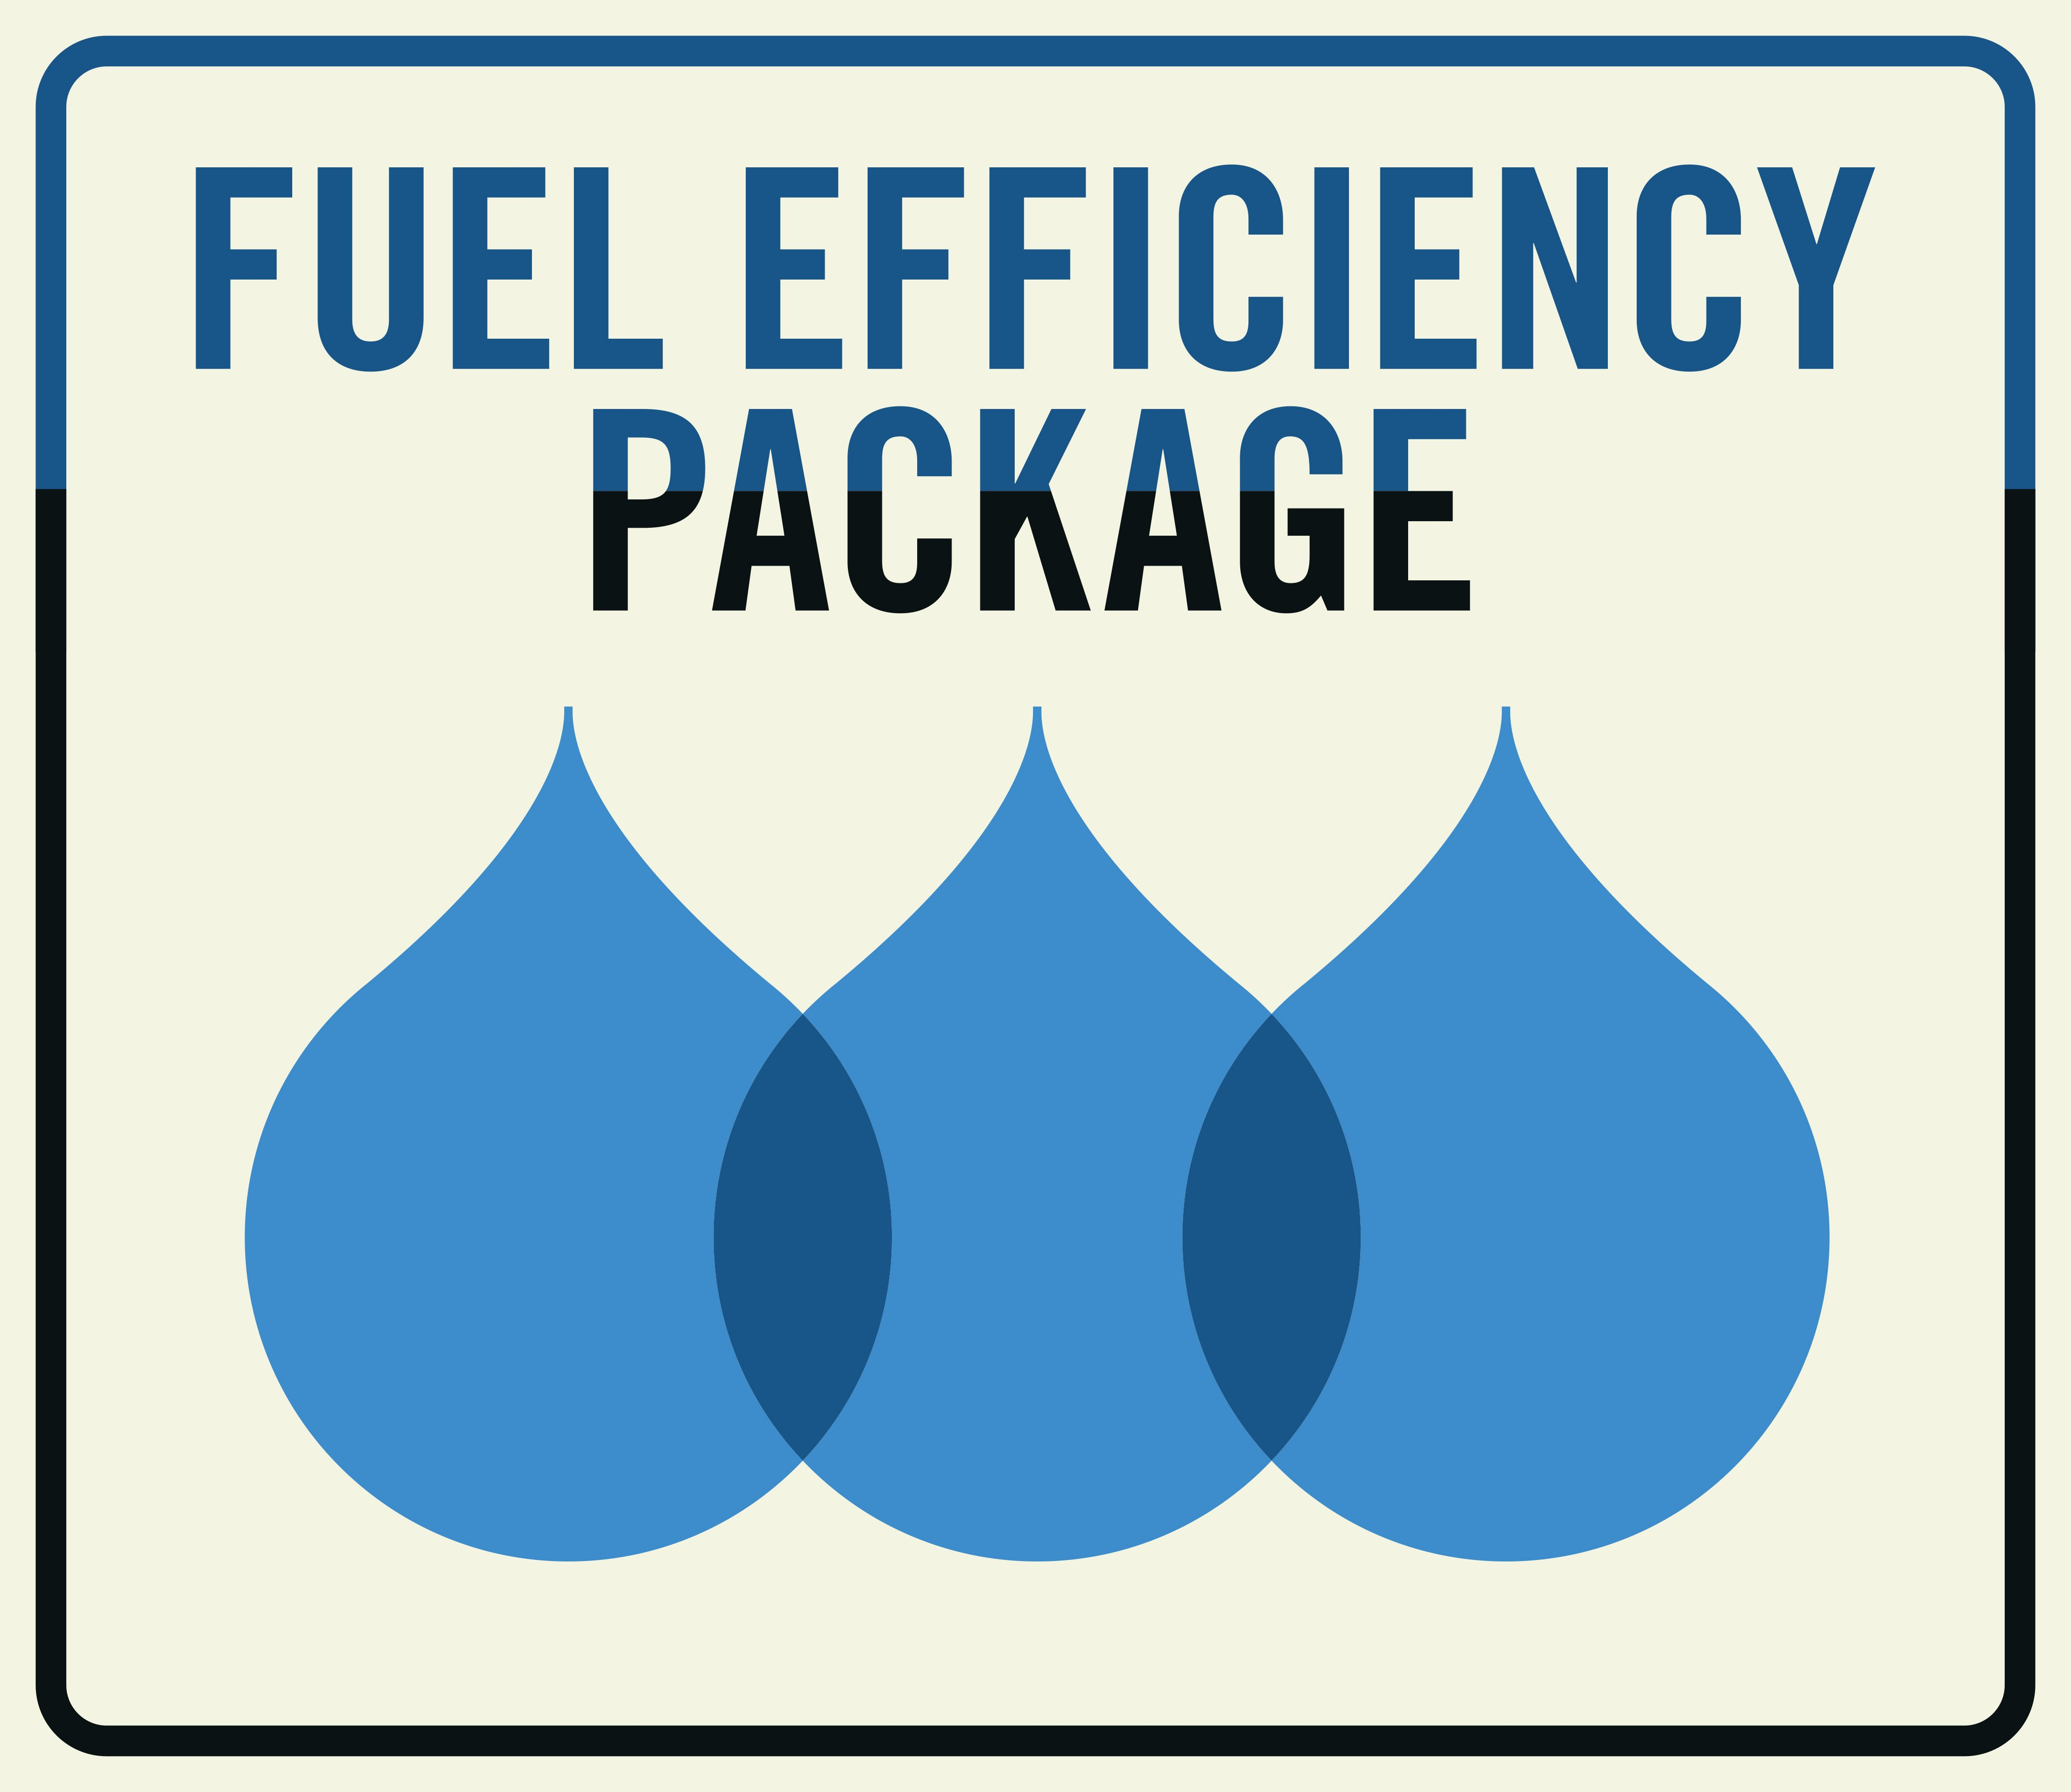 Fuel Efficiency Package